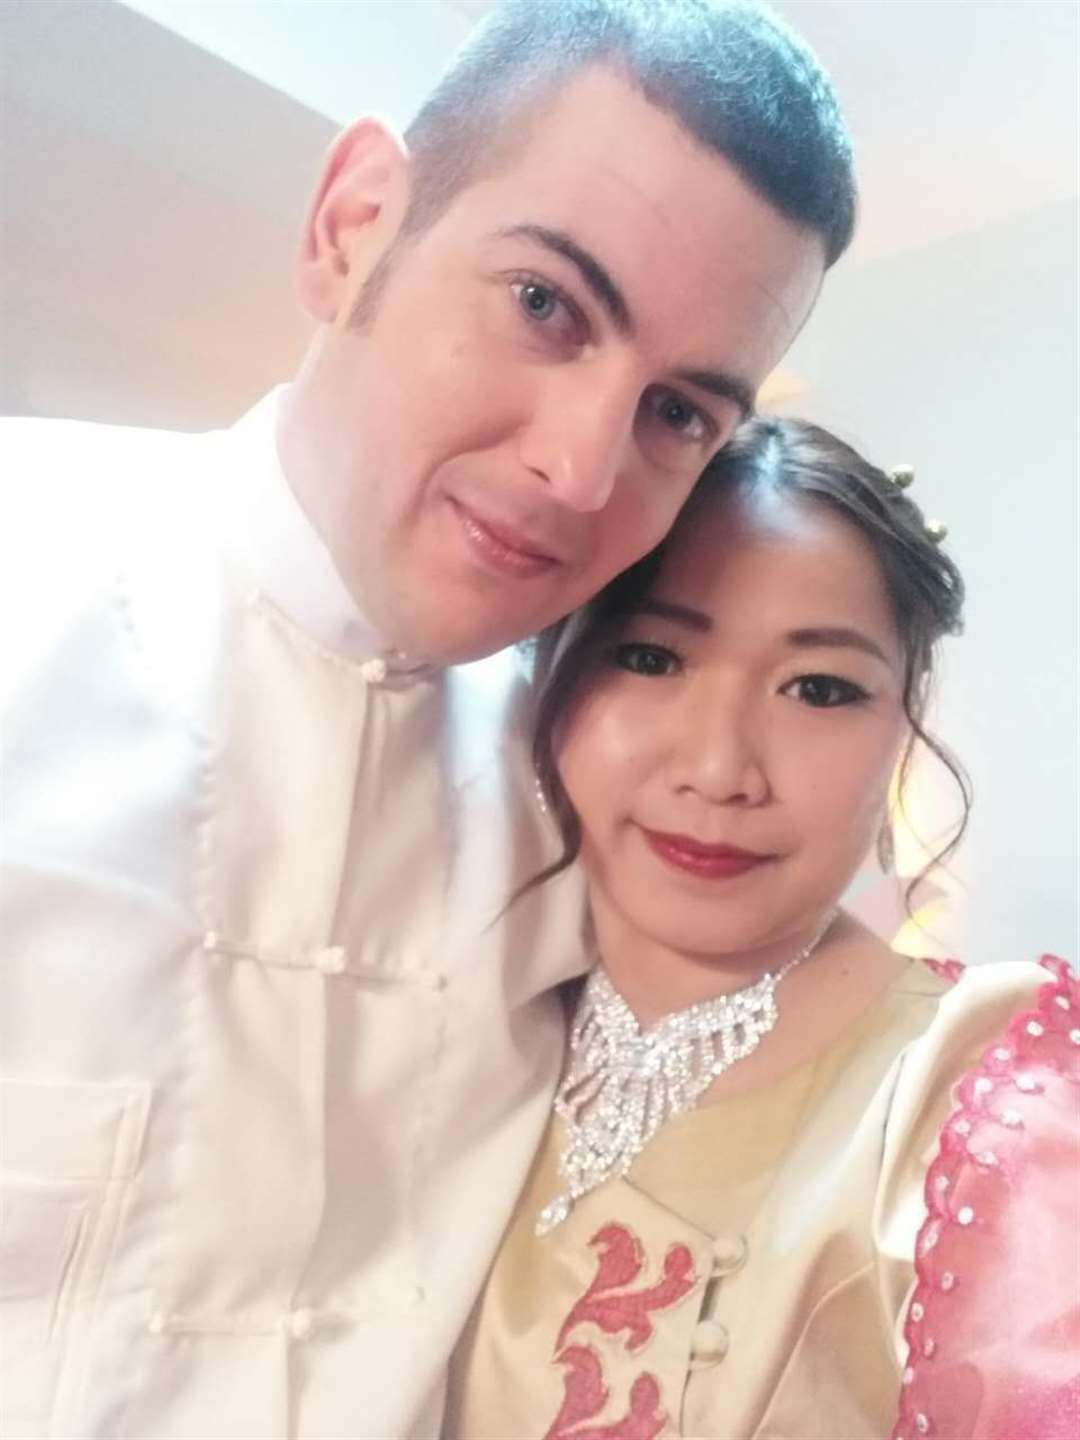 Ramsay and Pan Ei Phyu on their wedding day on February 4, 2018.